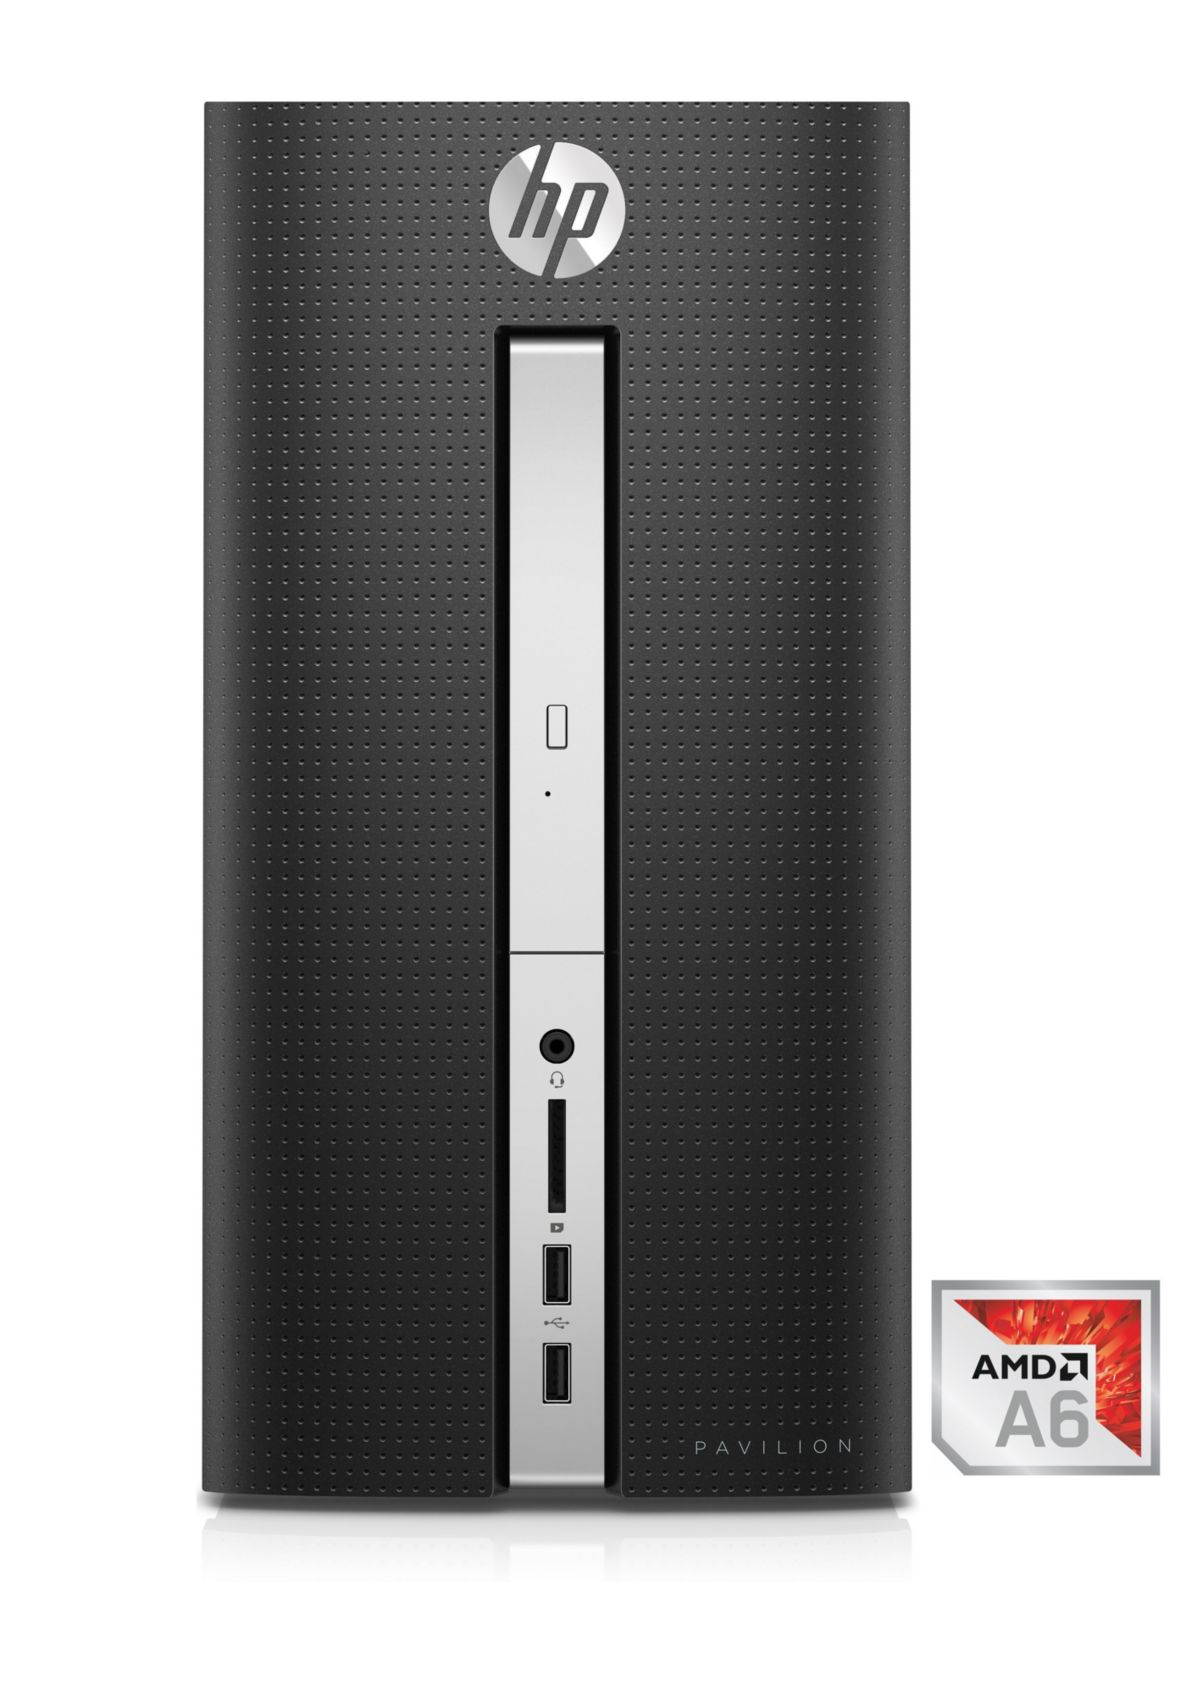 HP Pavilion 570 a152ng Desktop PC AMD Dual Core A6 1 TB HDD 8GB